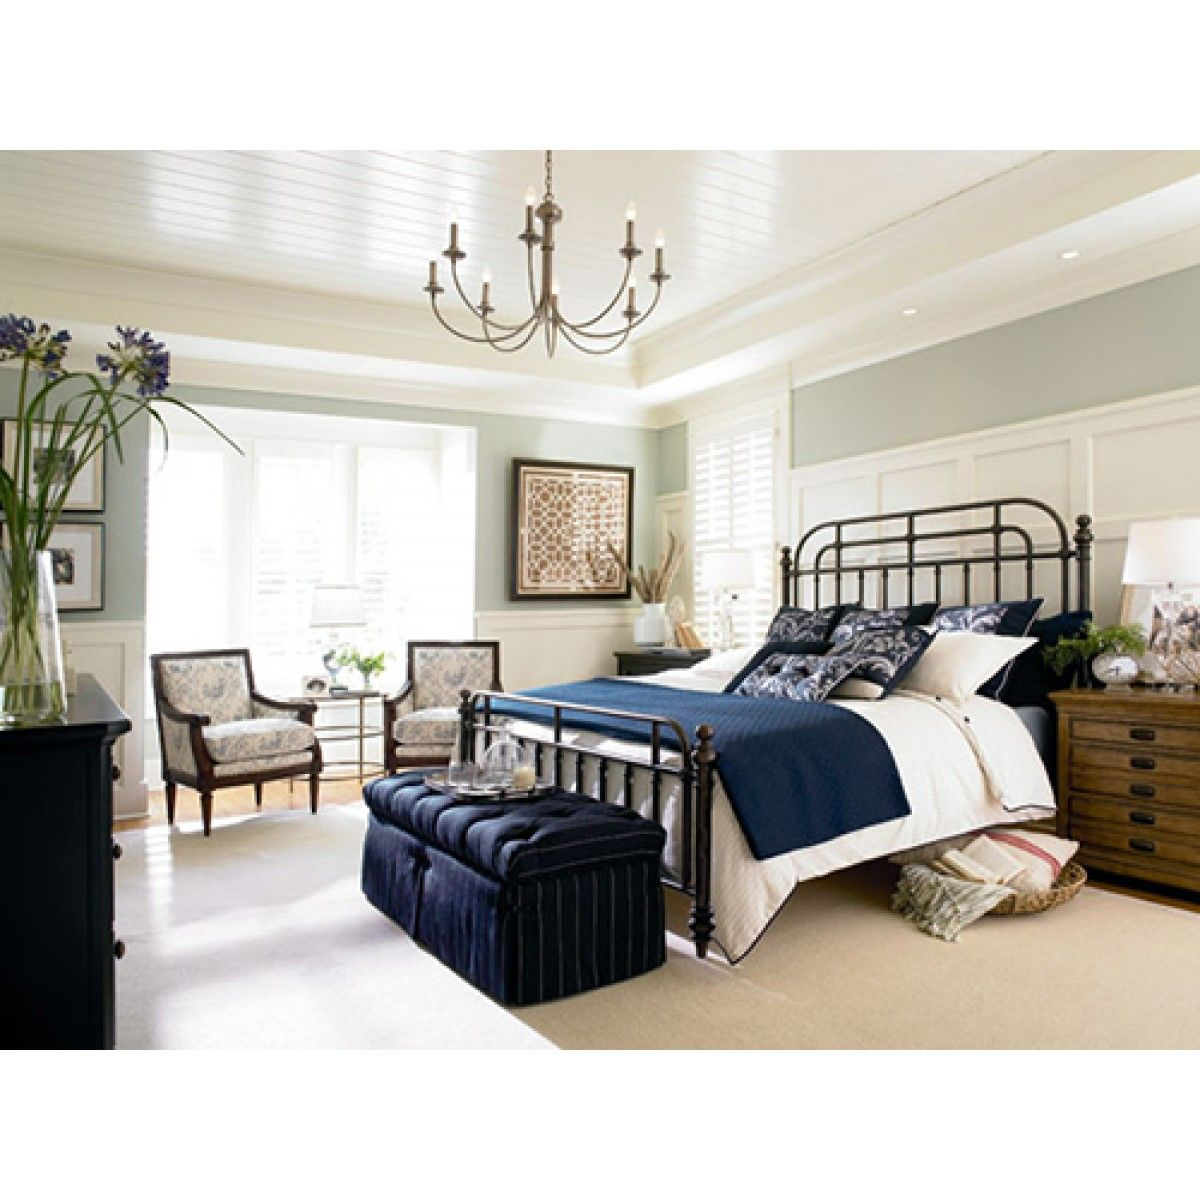 Thomasville Reinventions Pullman Metal King Bed Home